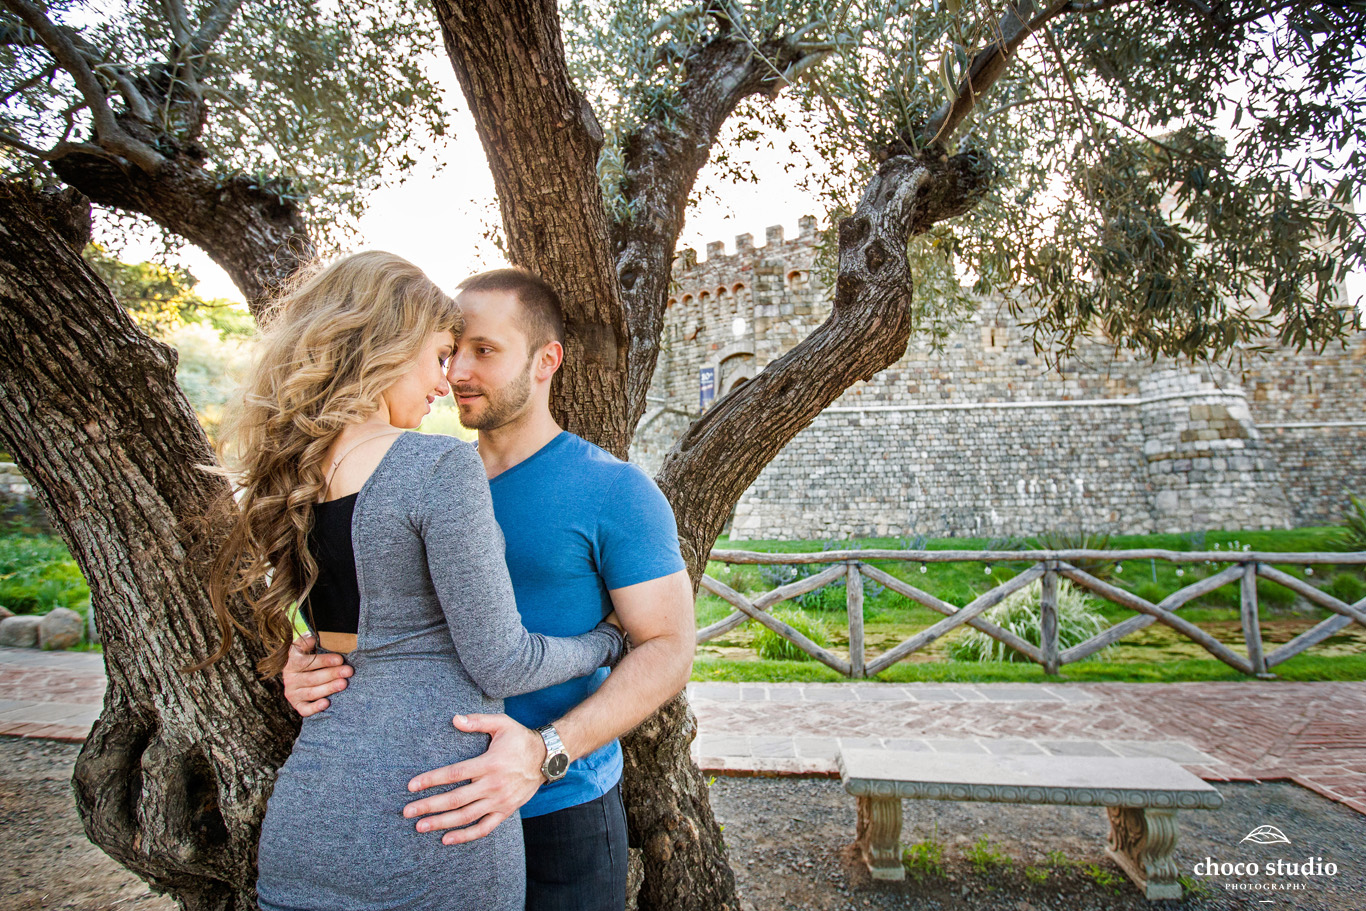 Engagement Photo at Castello di Amorosa